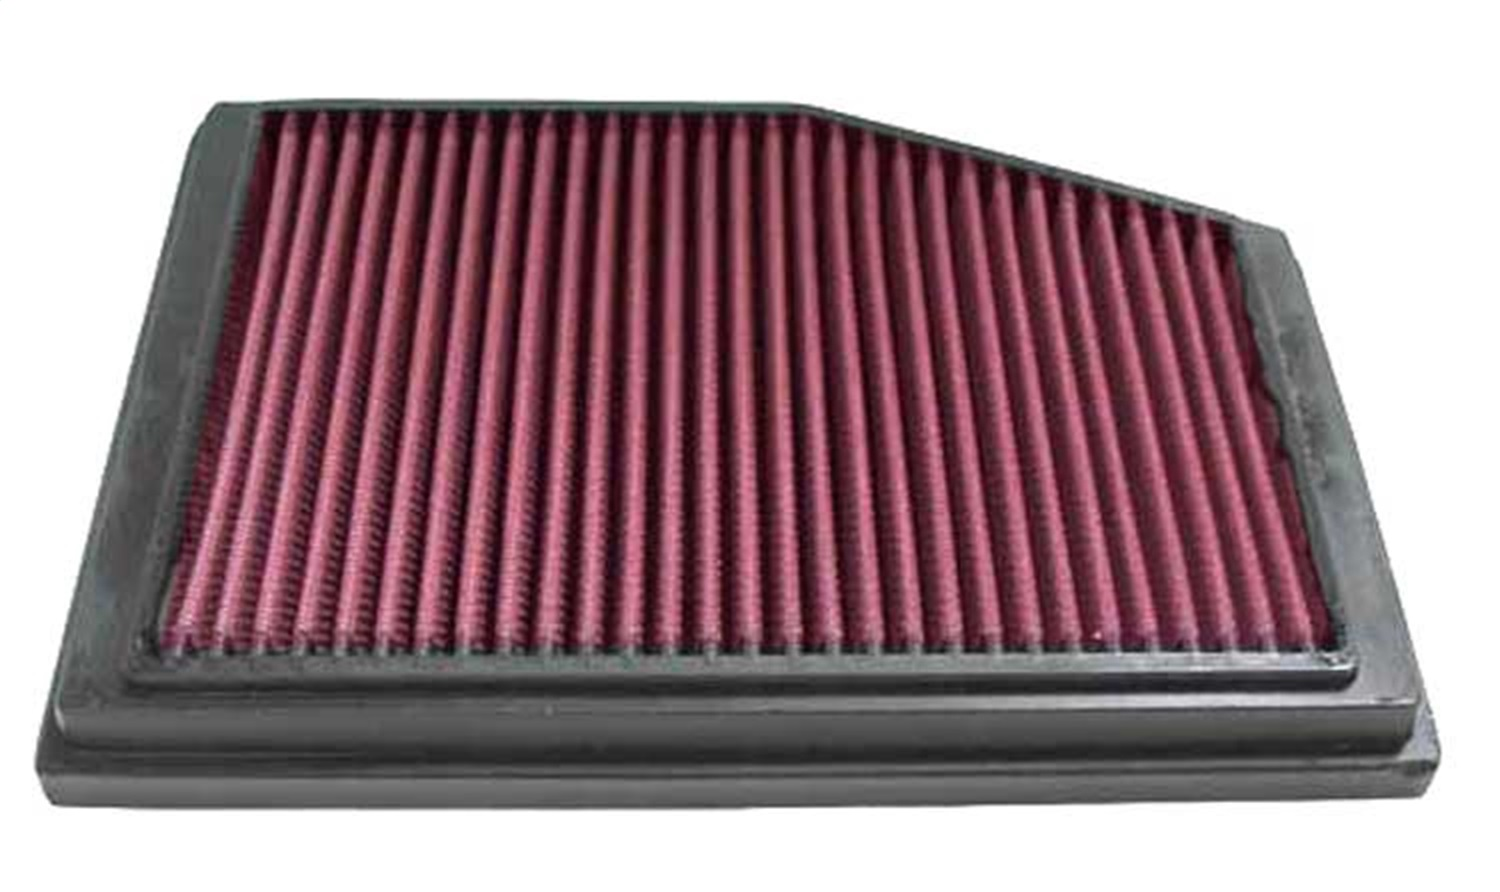 K&N Filters 33-2773 Air Filter Fits 97-04 Boxster 33-2773